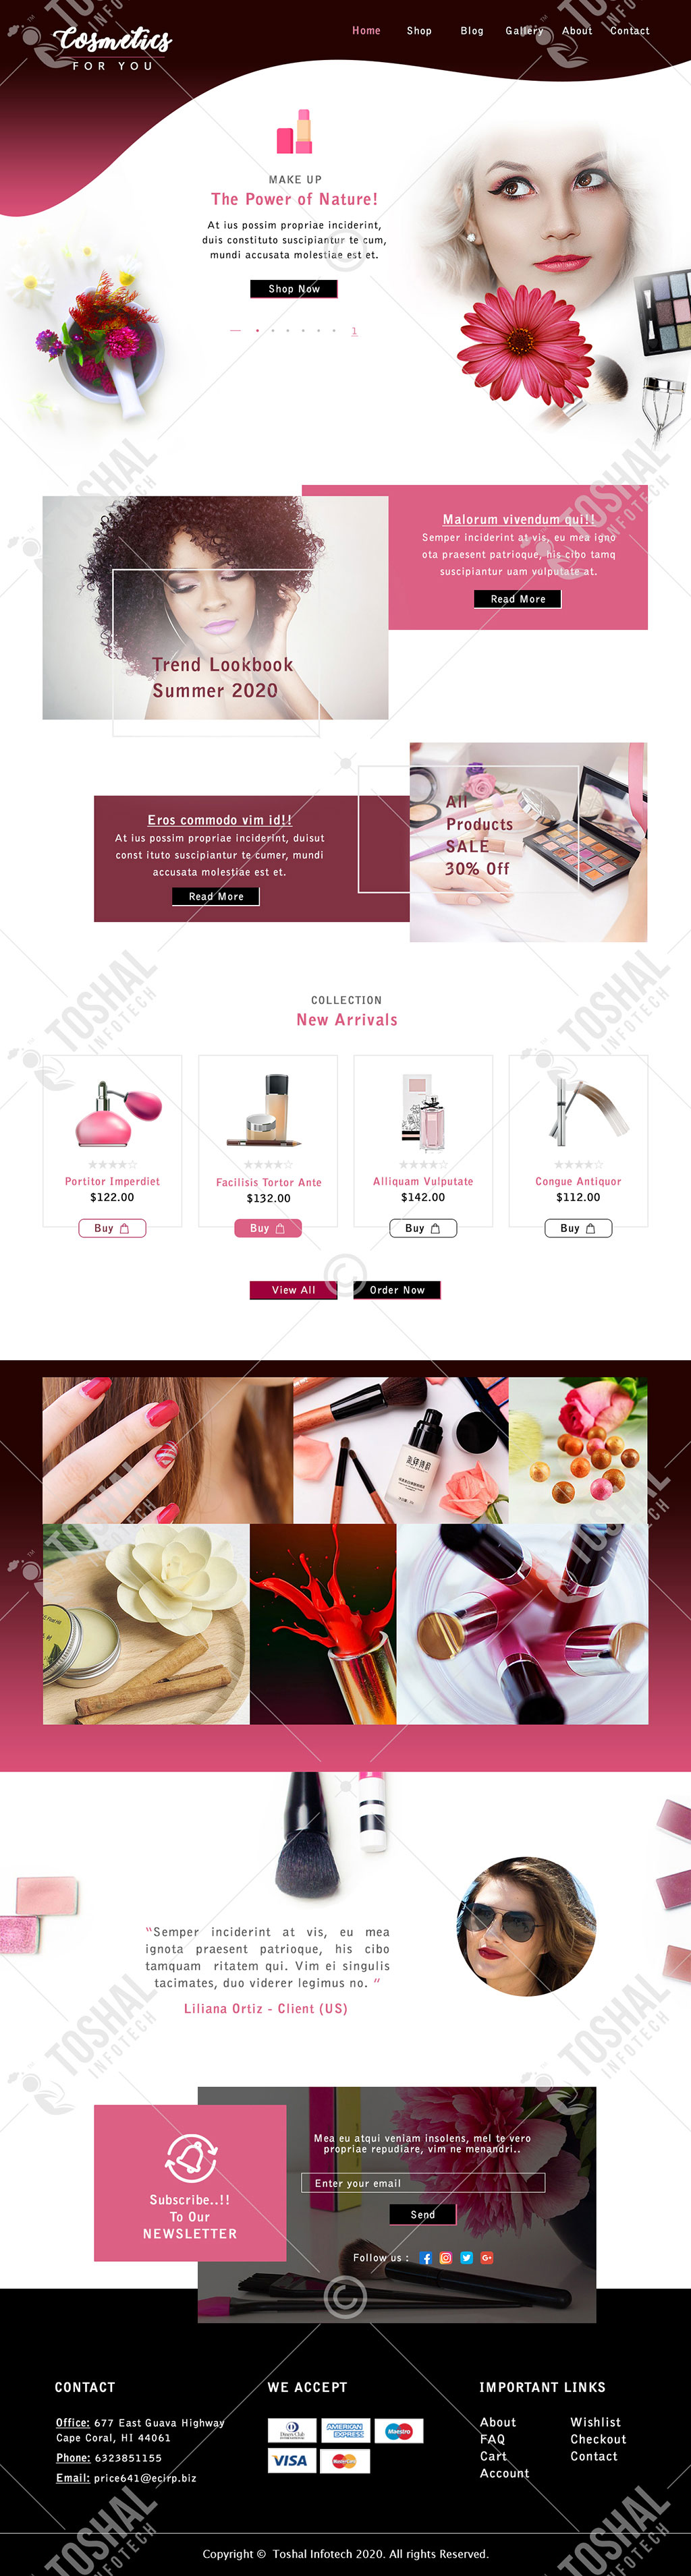 Beauty Cosmetics Shop Theme